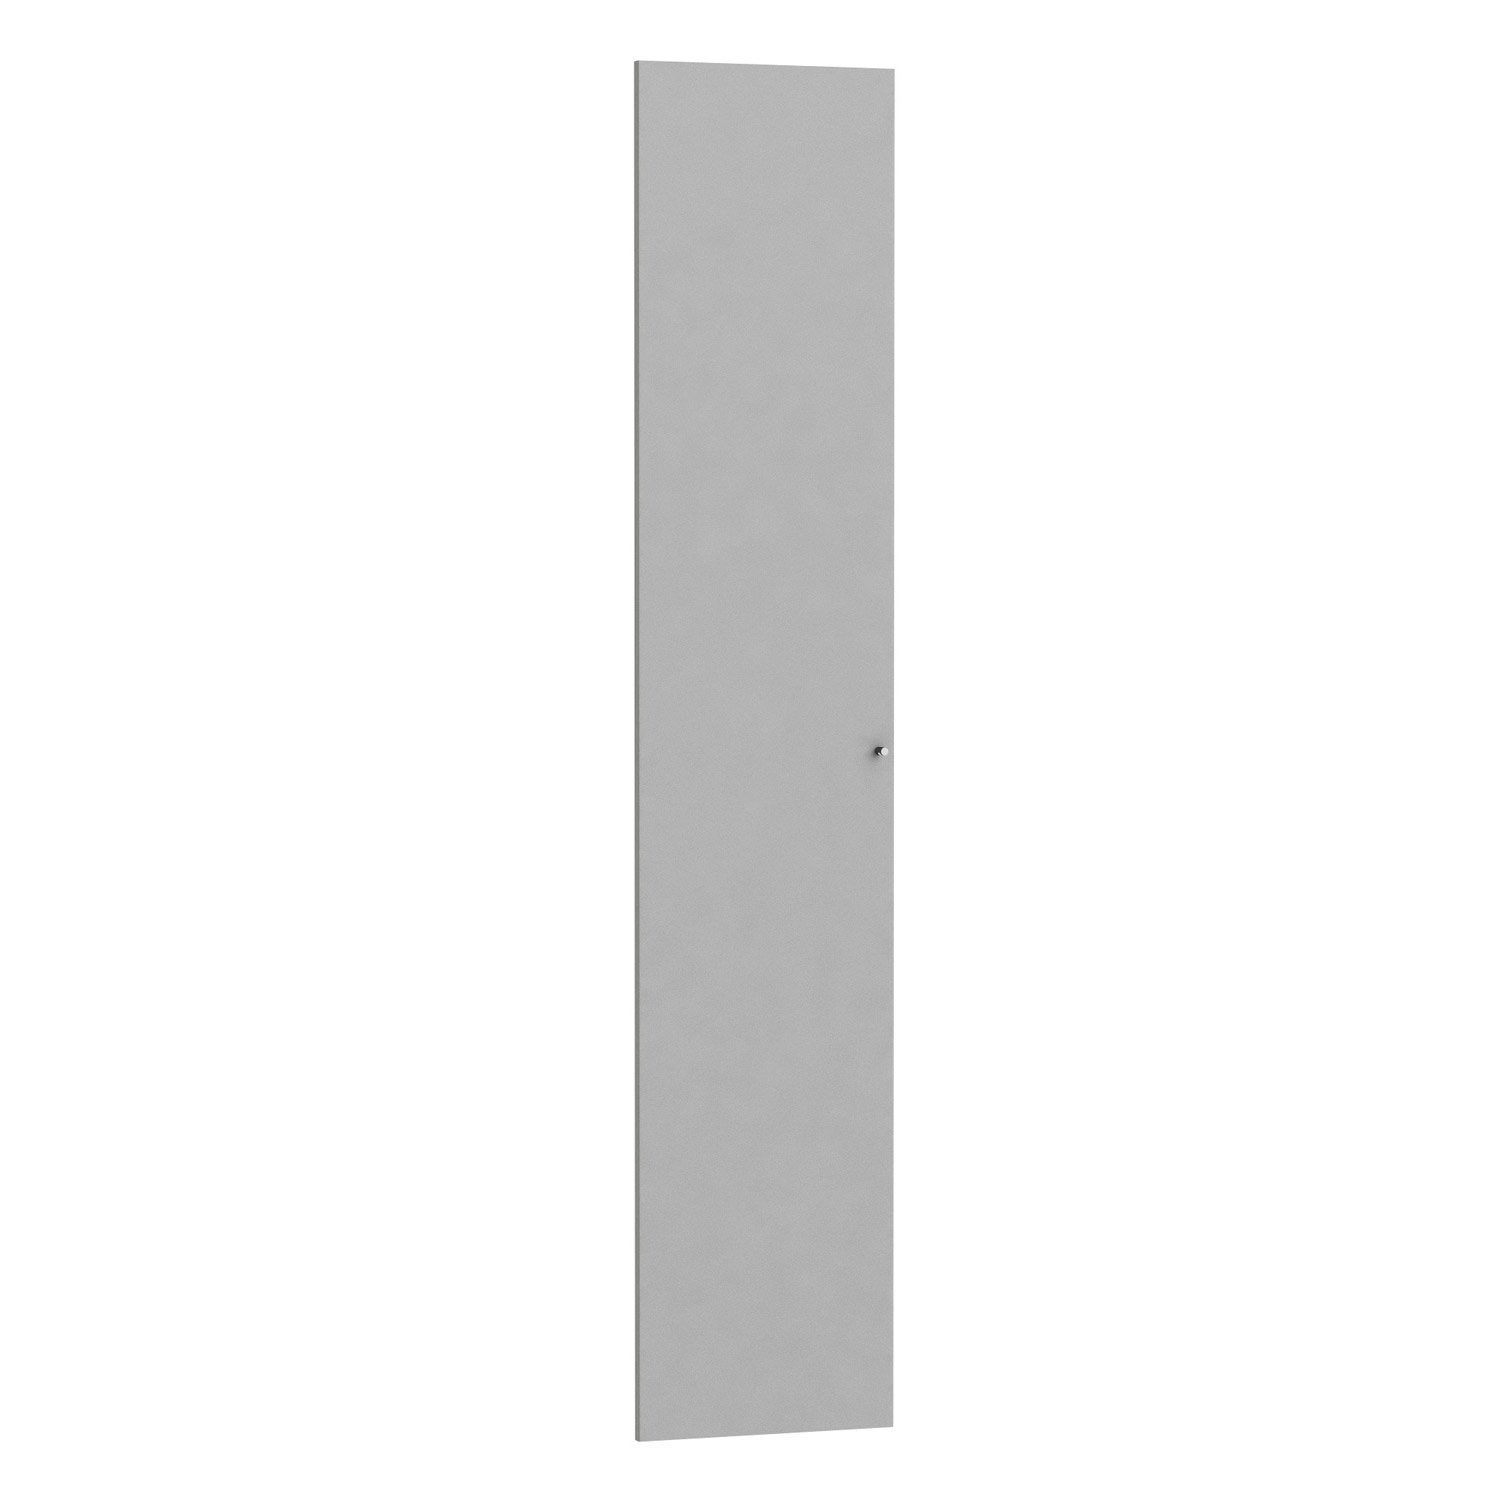 Porte battante spaceo home 200 x 40 x 1 6 cm anthracite - Porte battante leroy merlin ...